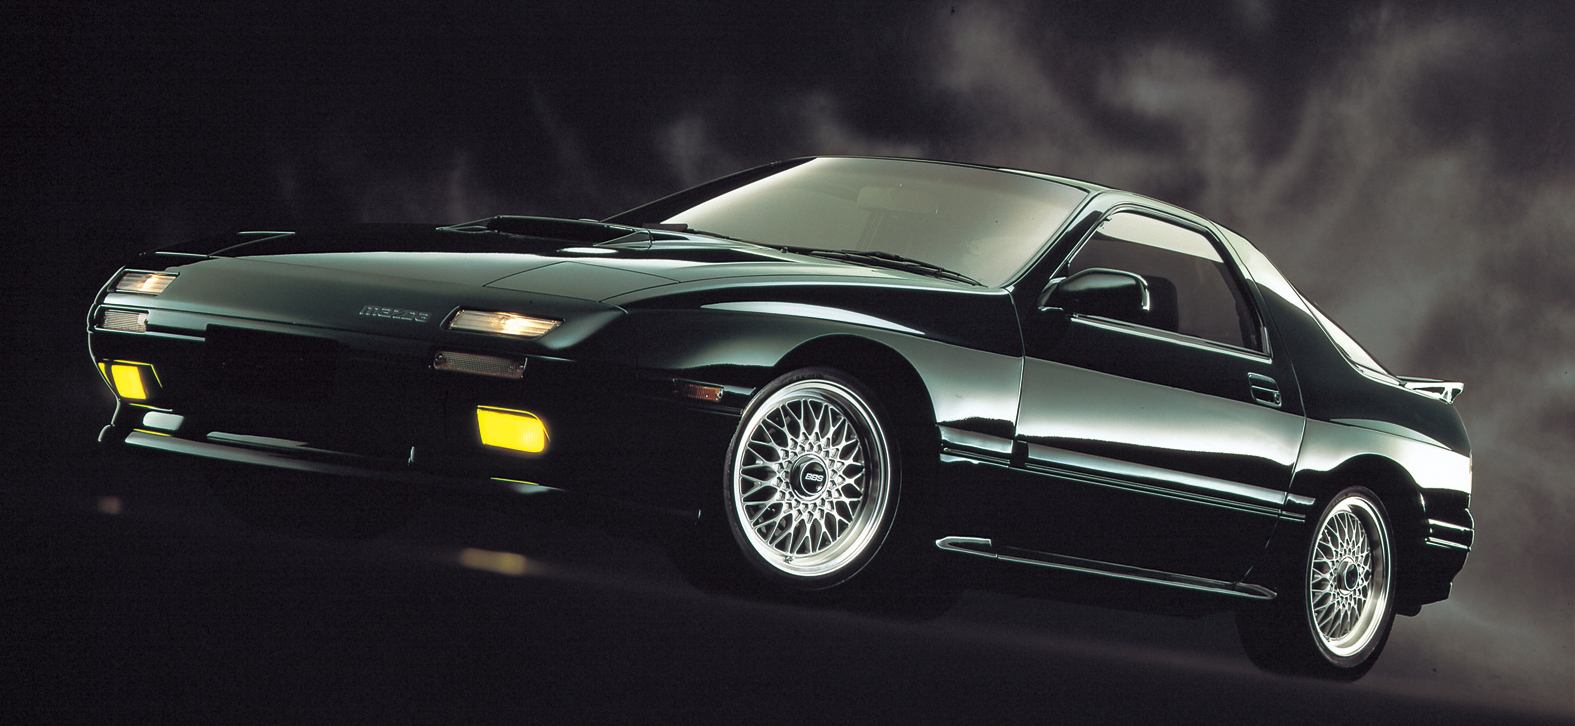 Vintage Views: FC-Chassis Mazda RX-7